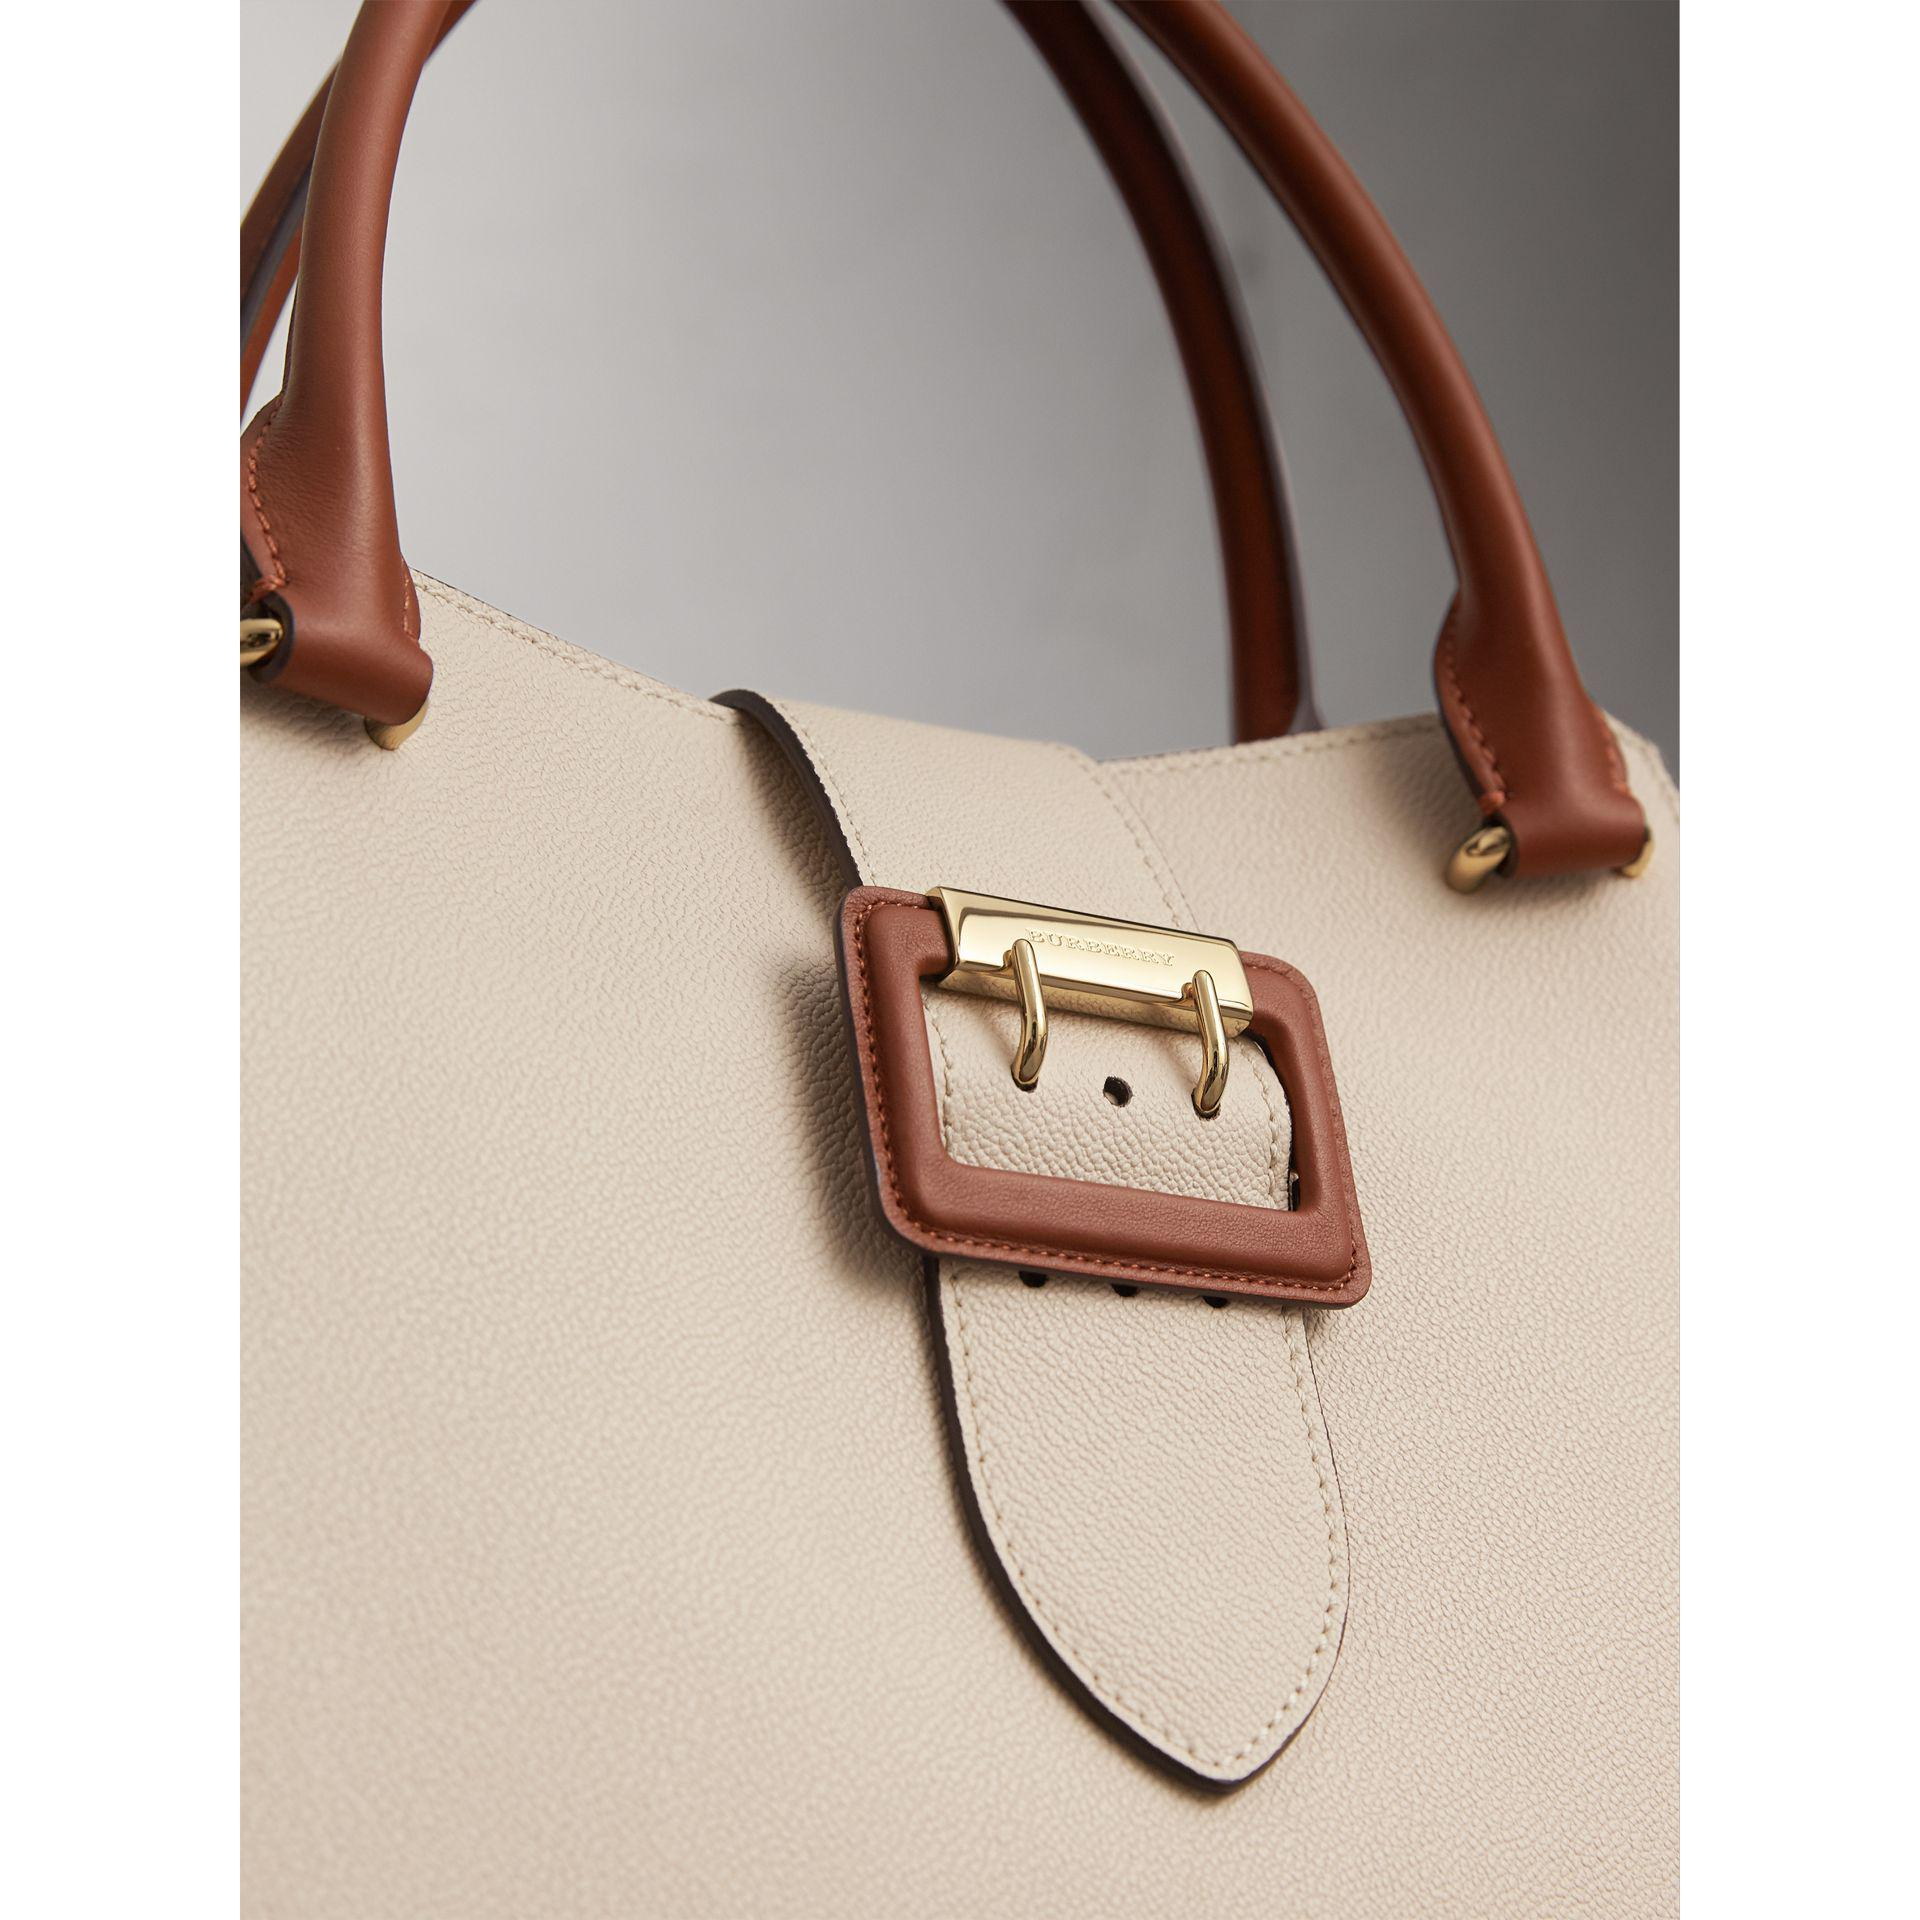 7573d54a57de Lyst - Burberry The Medium Buckle Tote In Grainy Leather